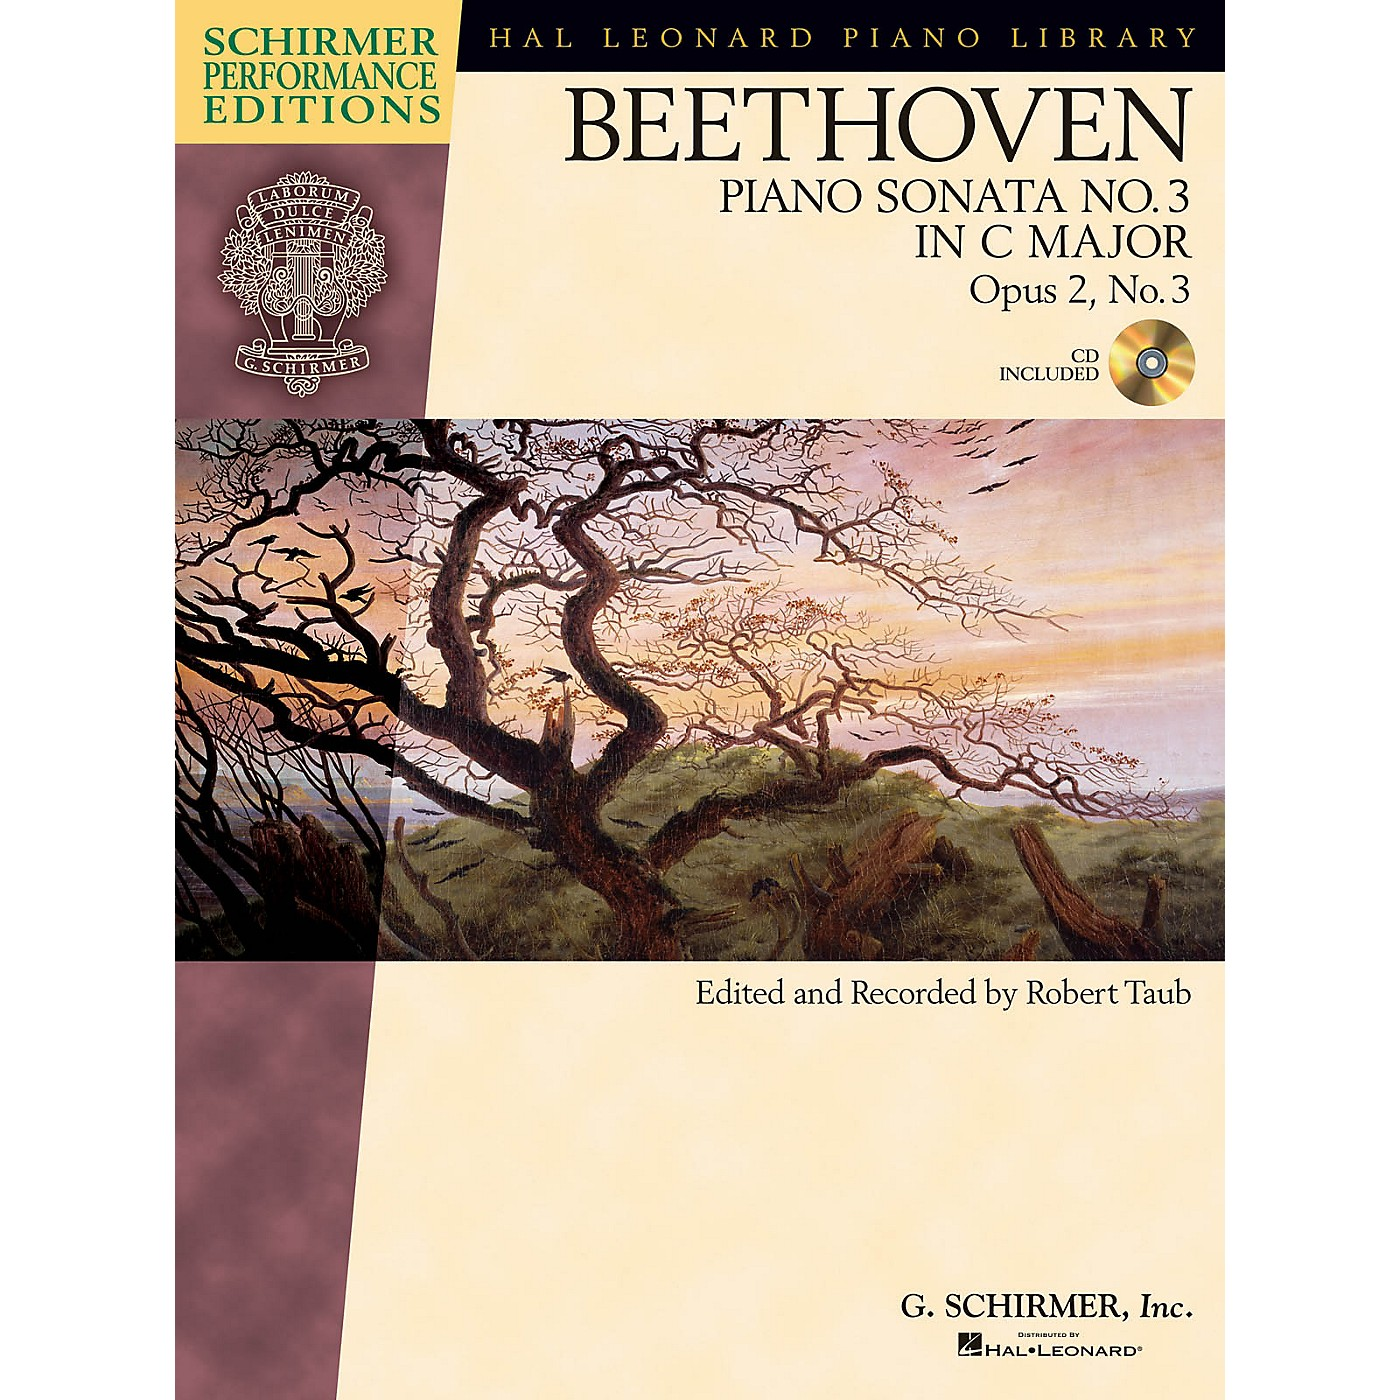 G. Schirmer Beethoven: Sonata No 3 in C Maj Op 2 No 3 Schirmer Performance Editions BK/CD by Beethoven Edited by Taub thumbnail